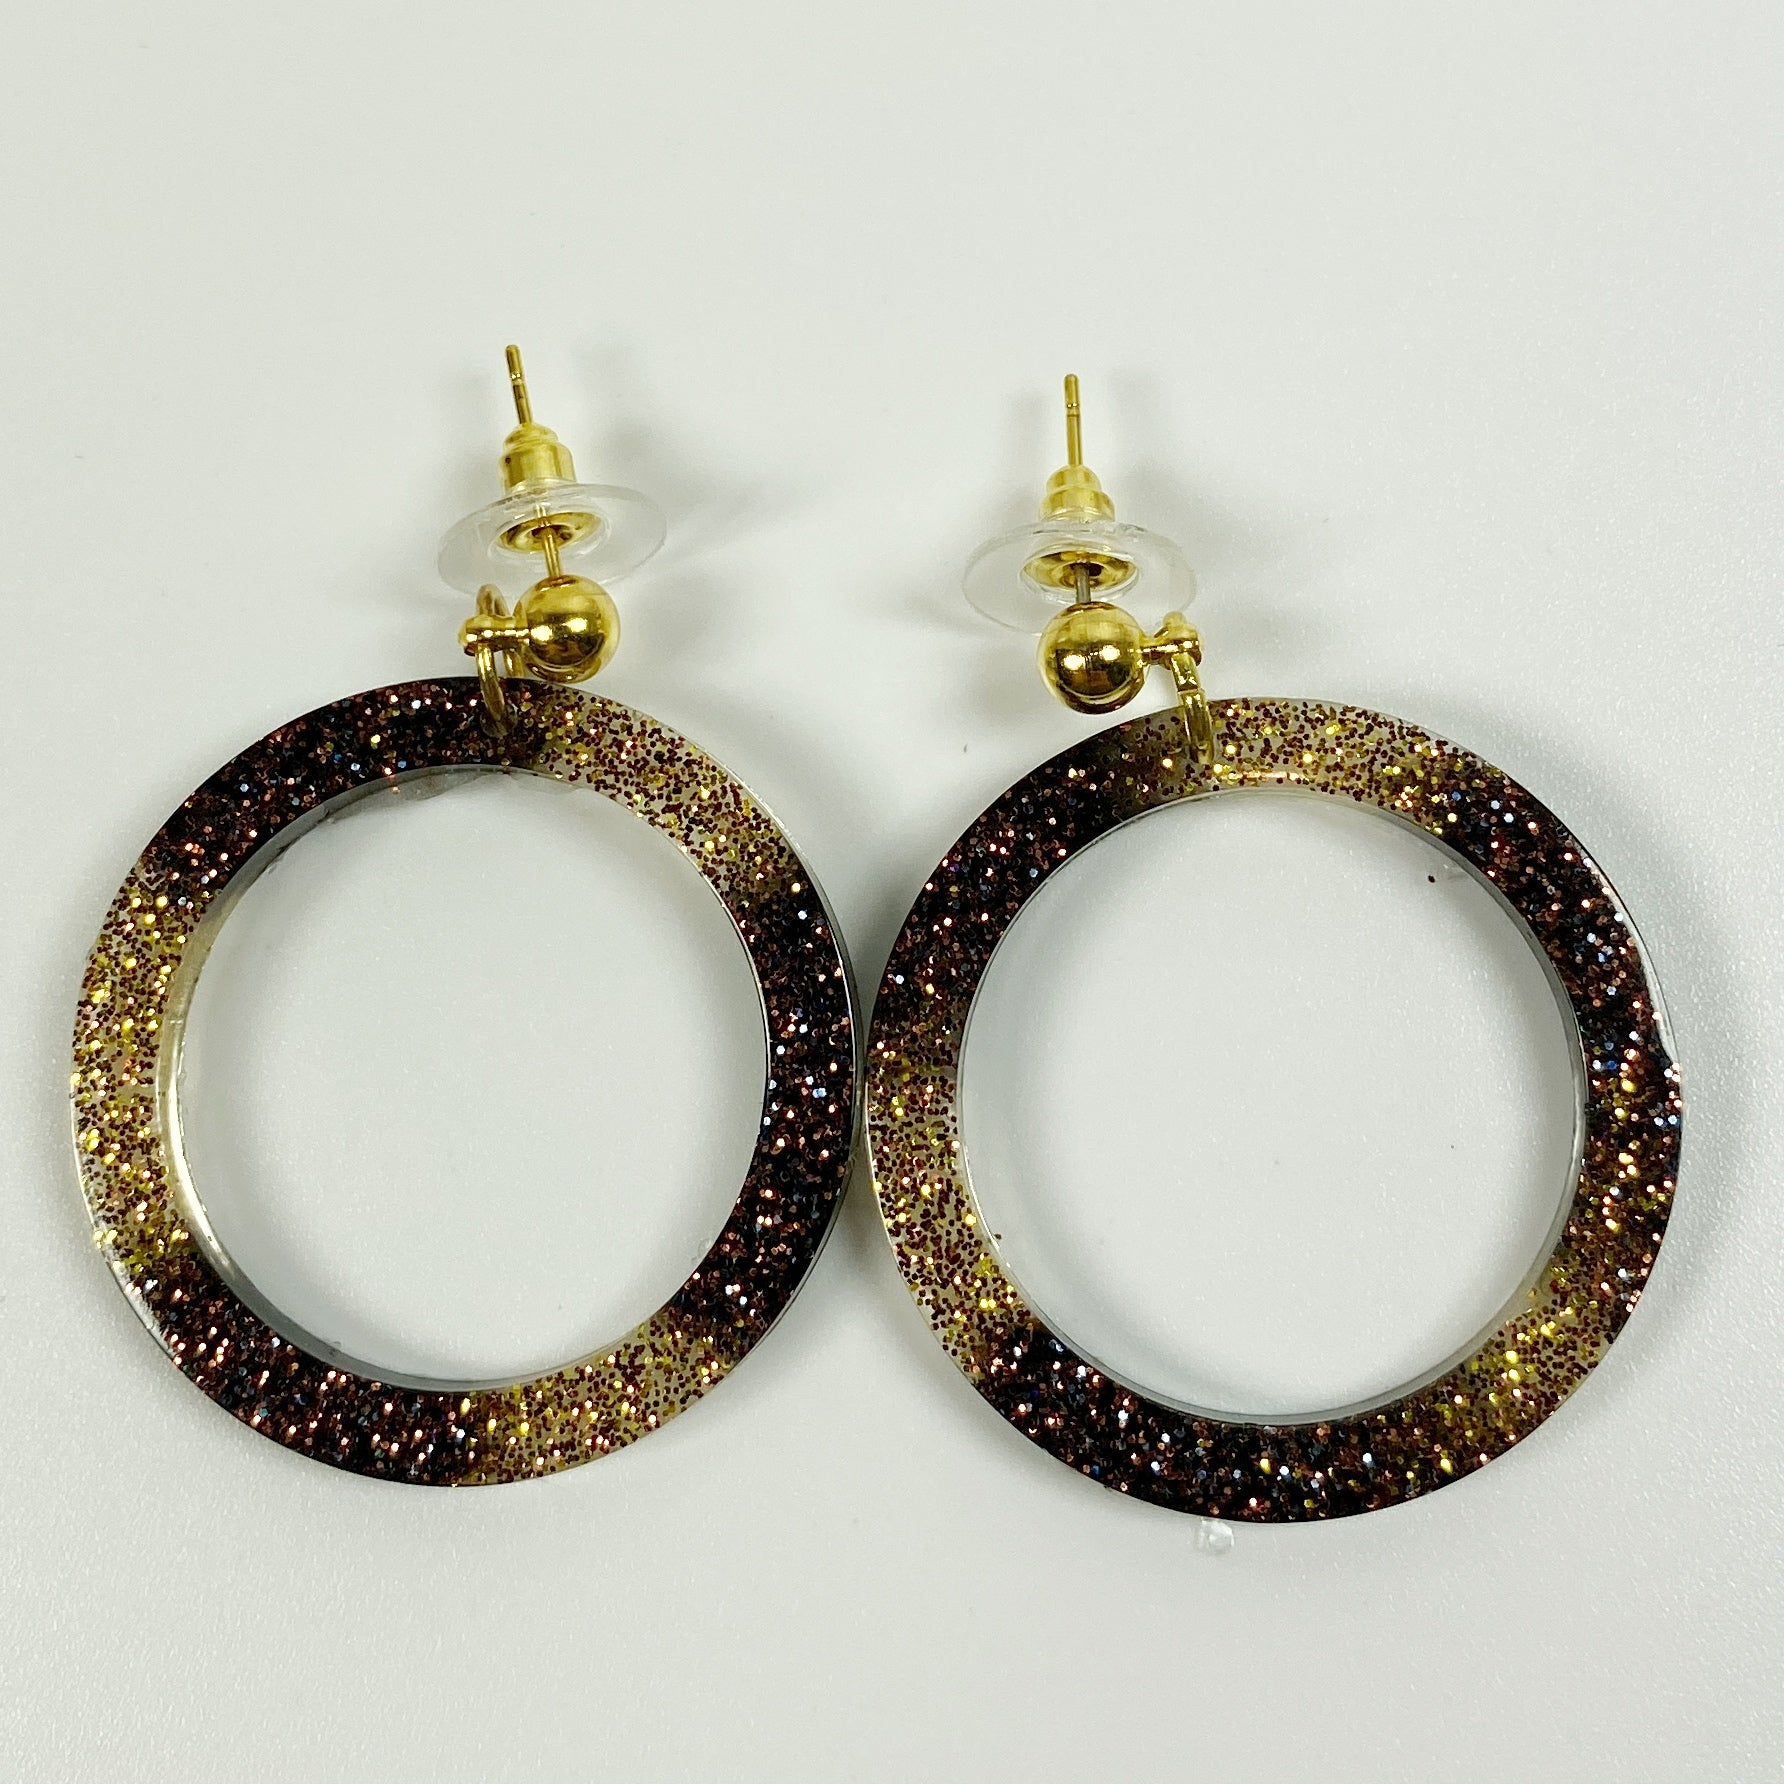 Hoop earrings of alternating gold and brown sparkly resin